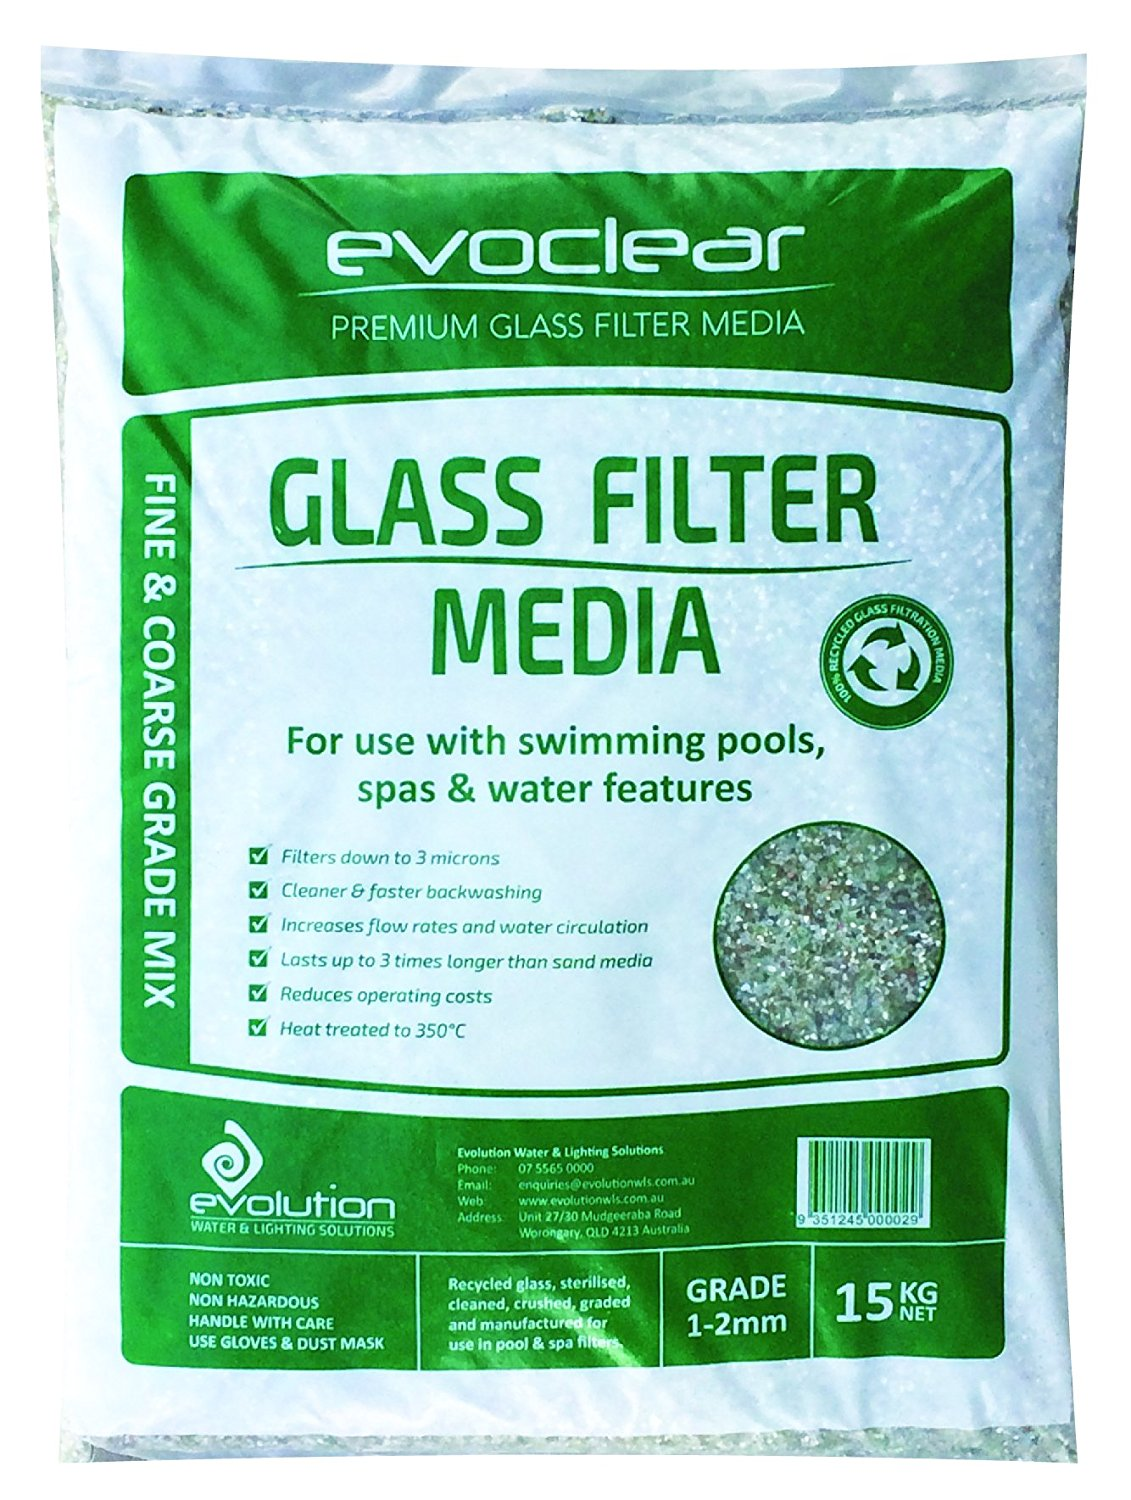 15kg bag of swimming pool filter sand replacement recycled glass media